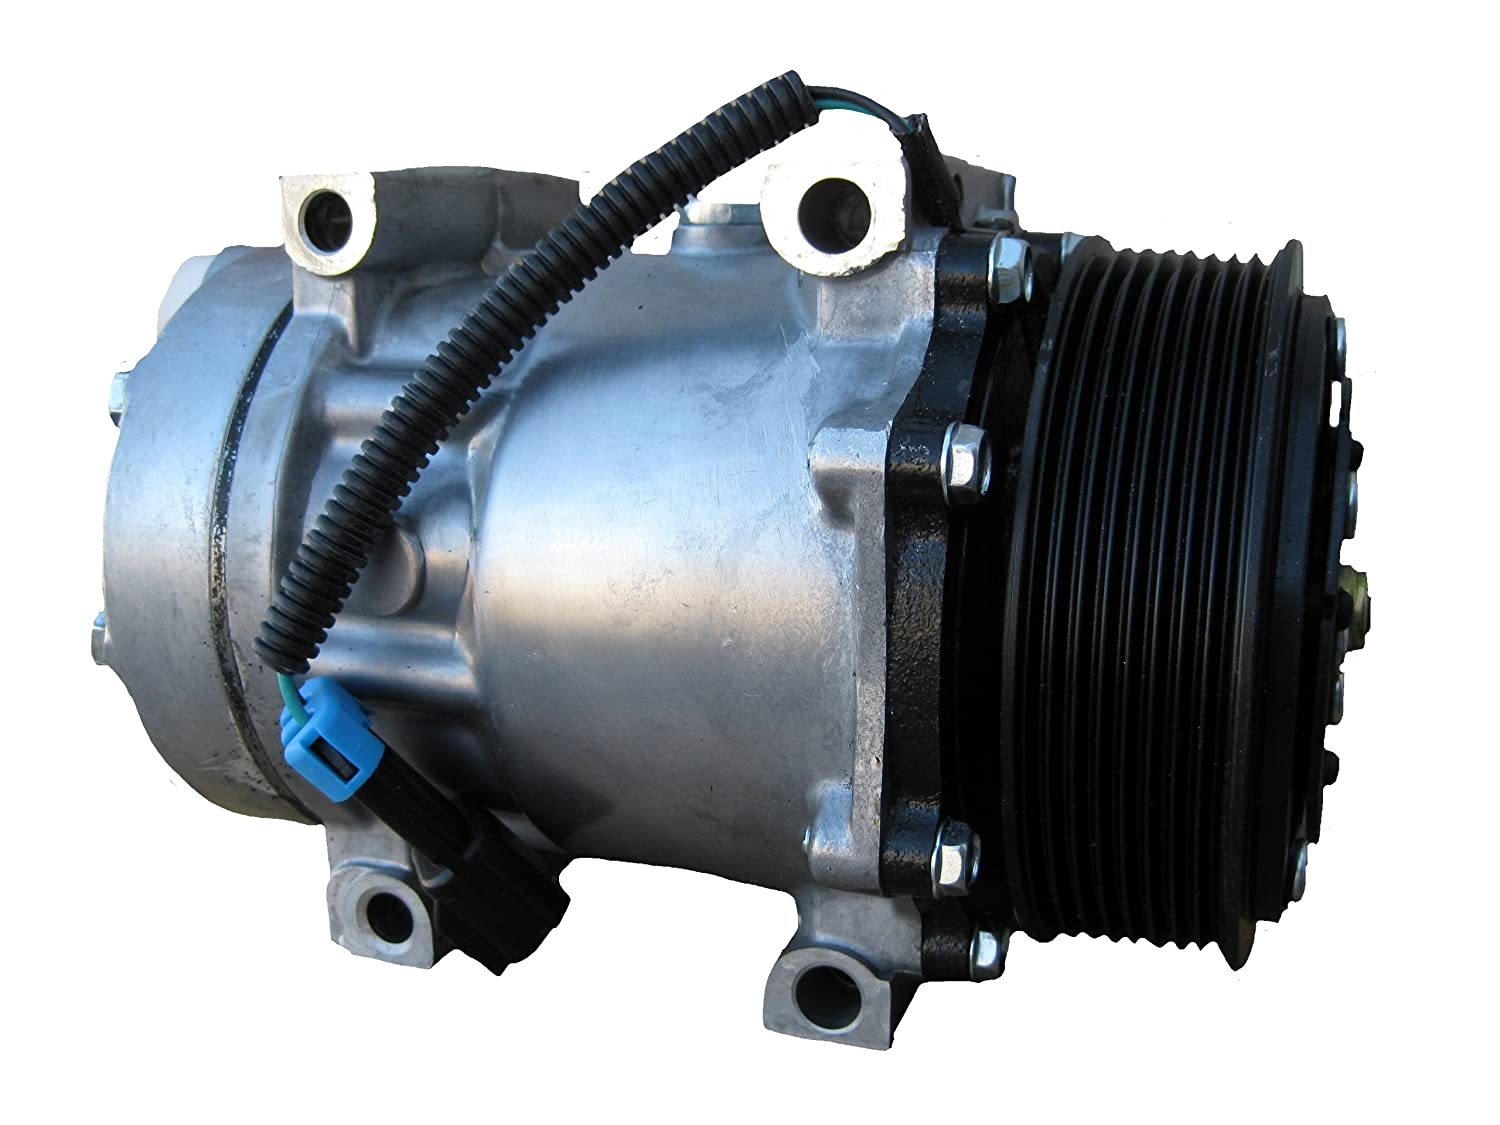 Amazon.com: Ford International Sanden Type 4816 AC Compressor W/ Clutch: Automotive